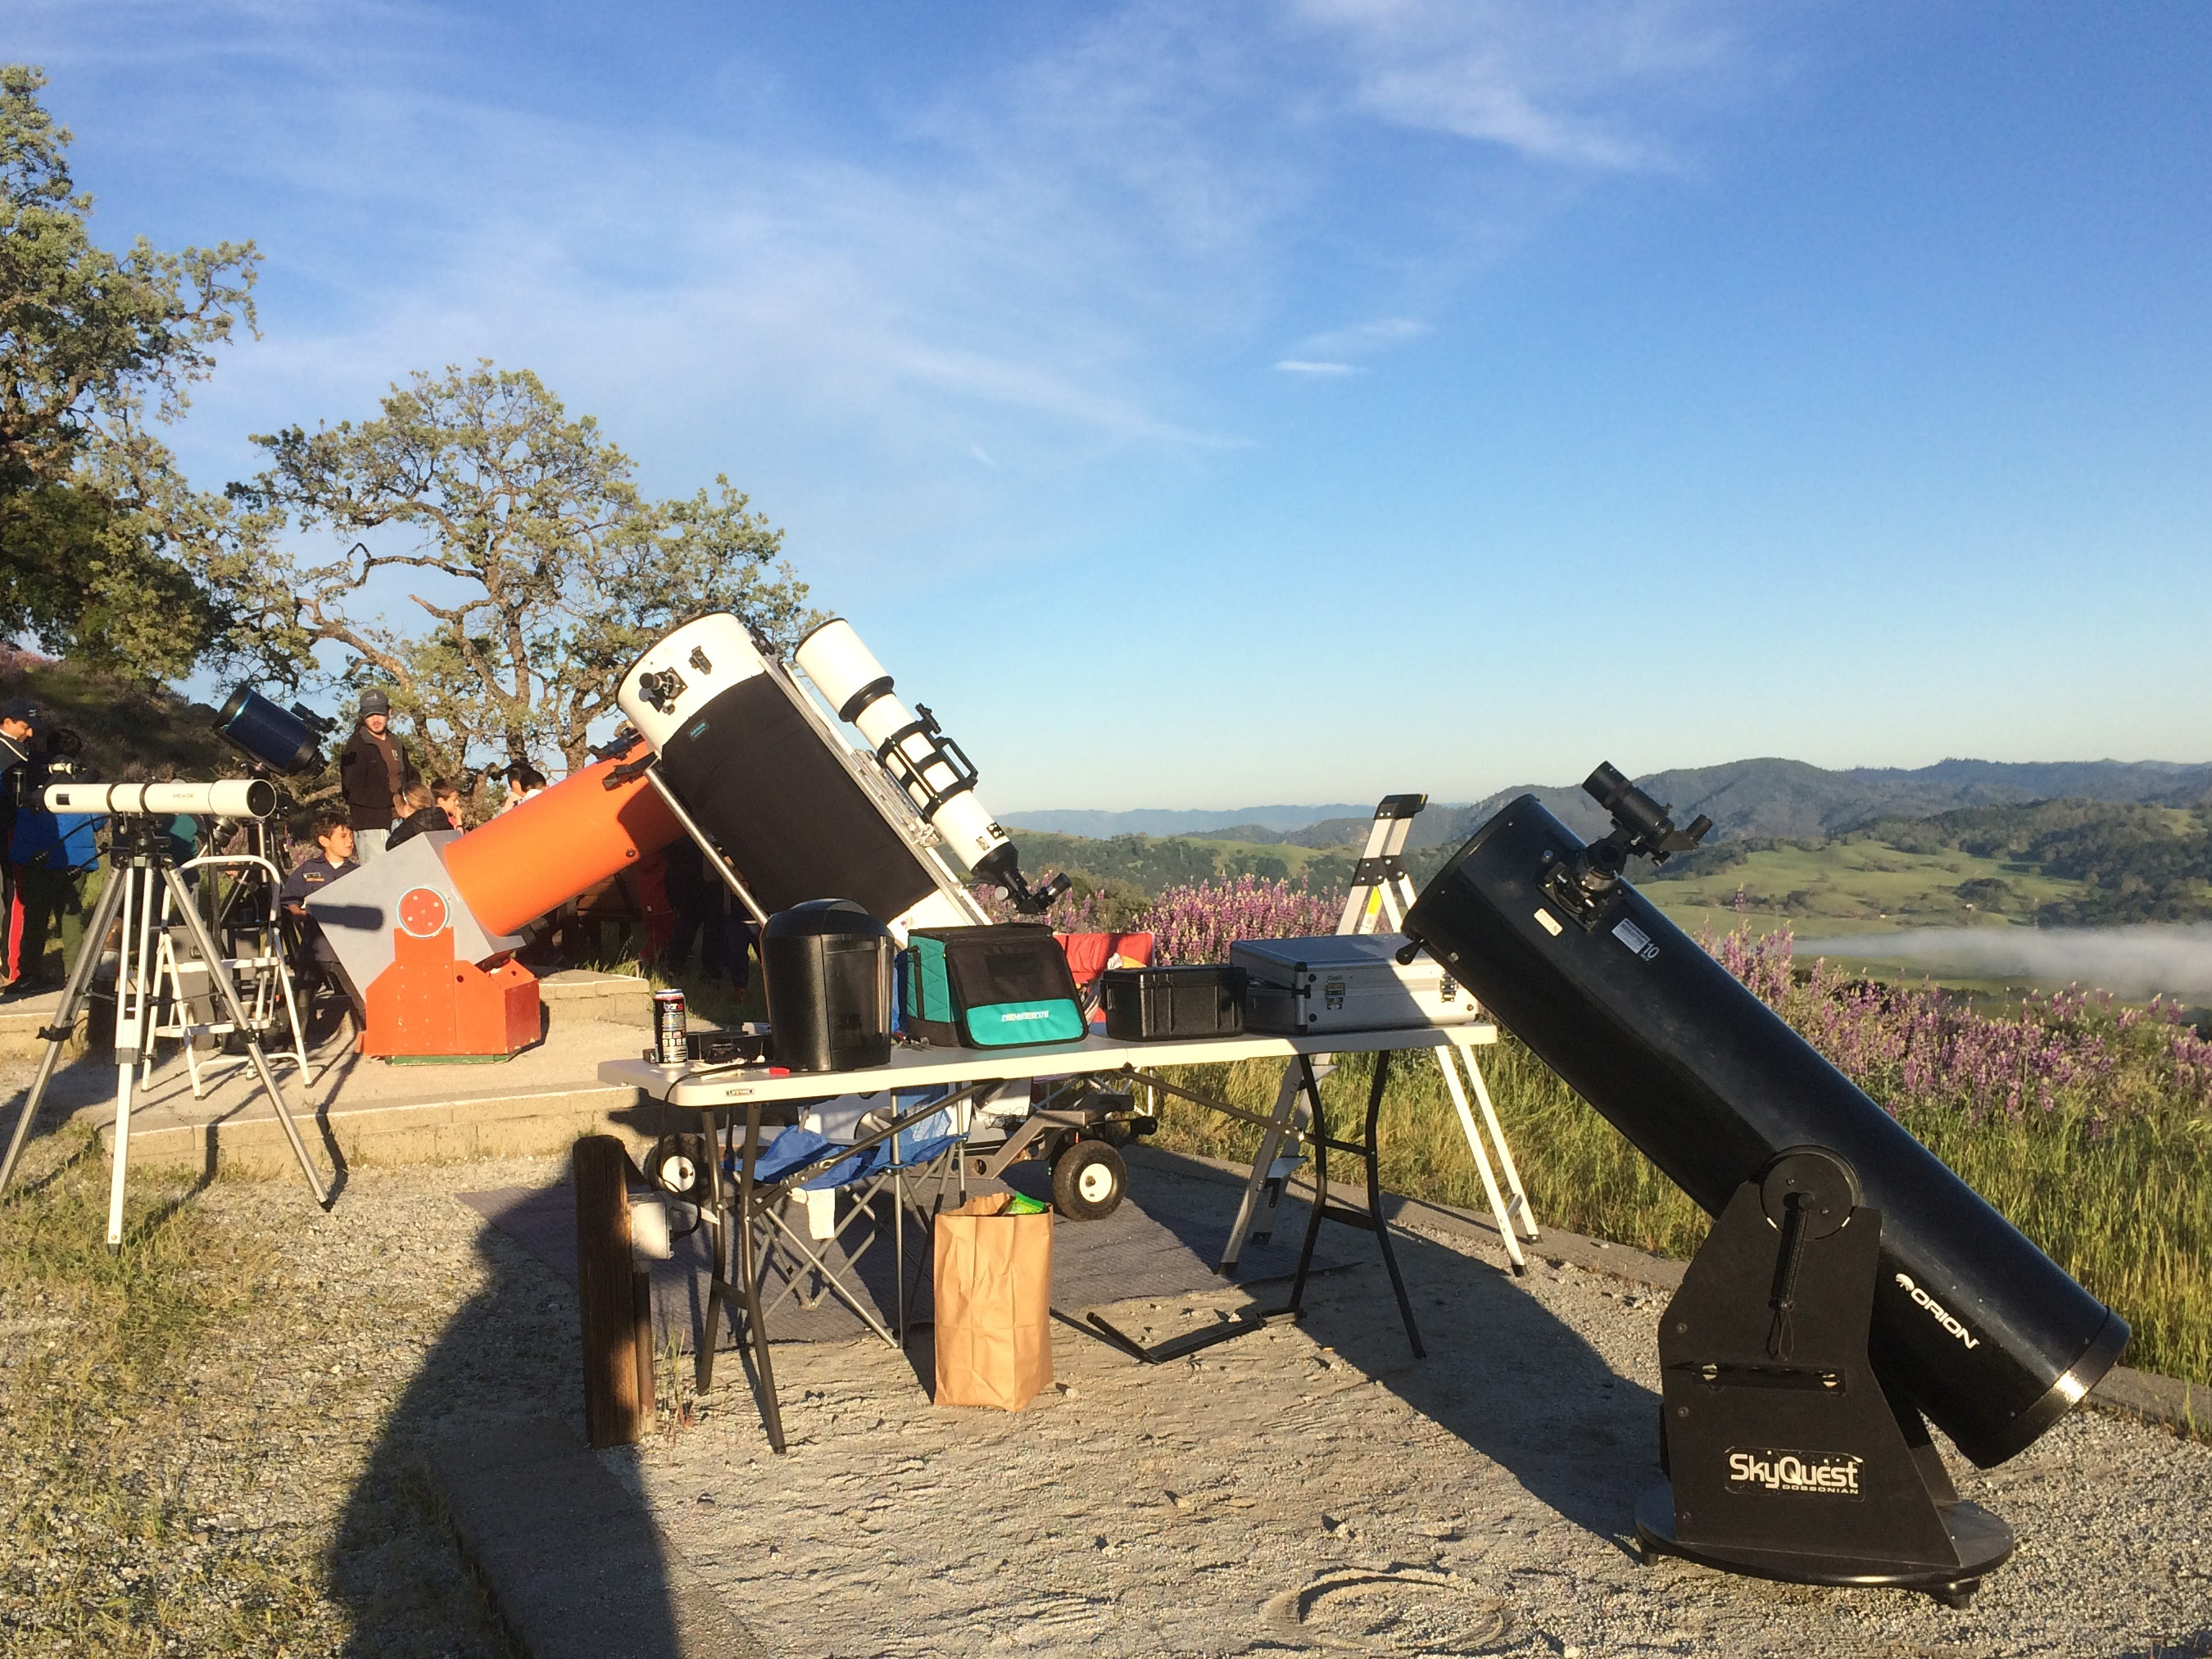 telescopes set up on pads